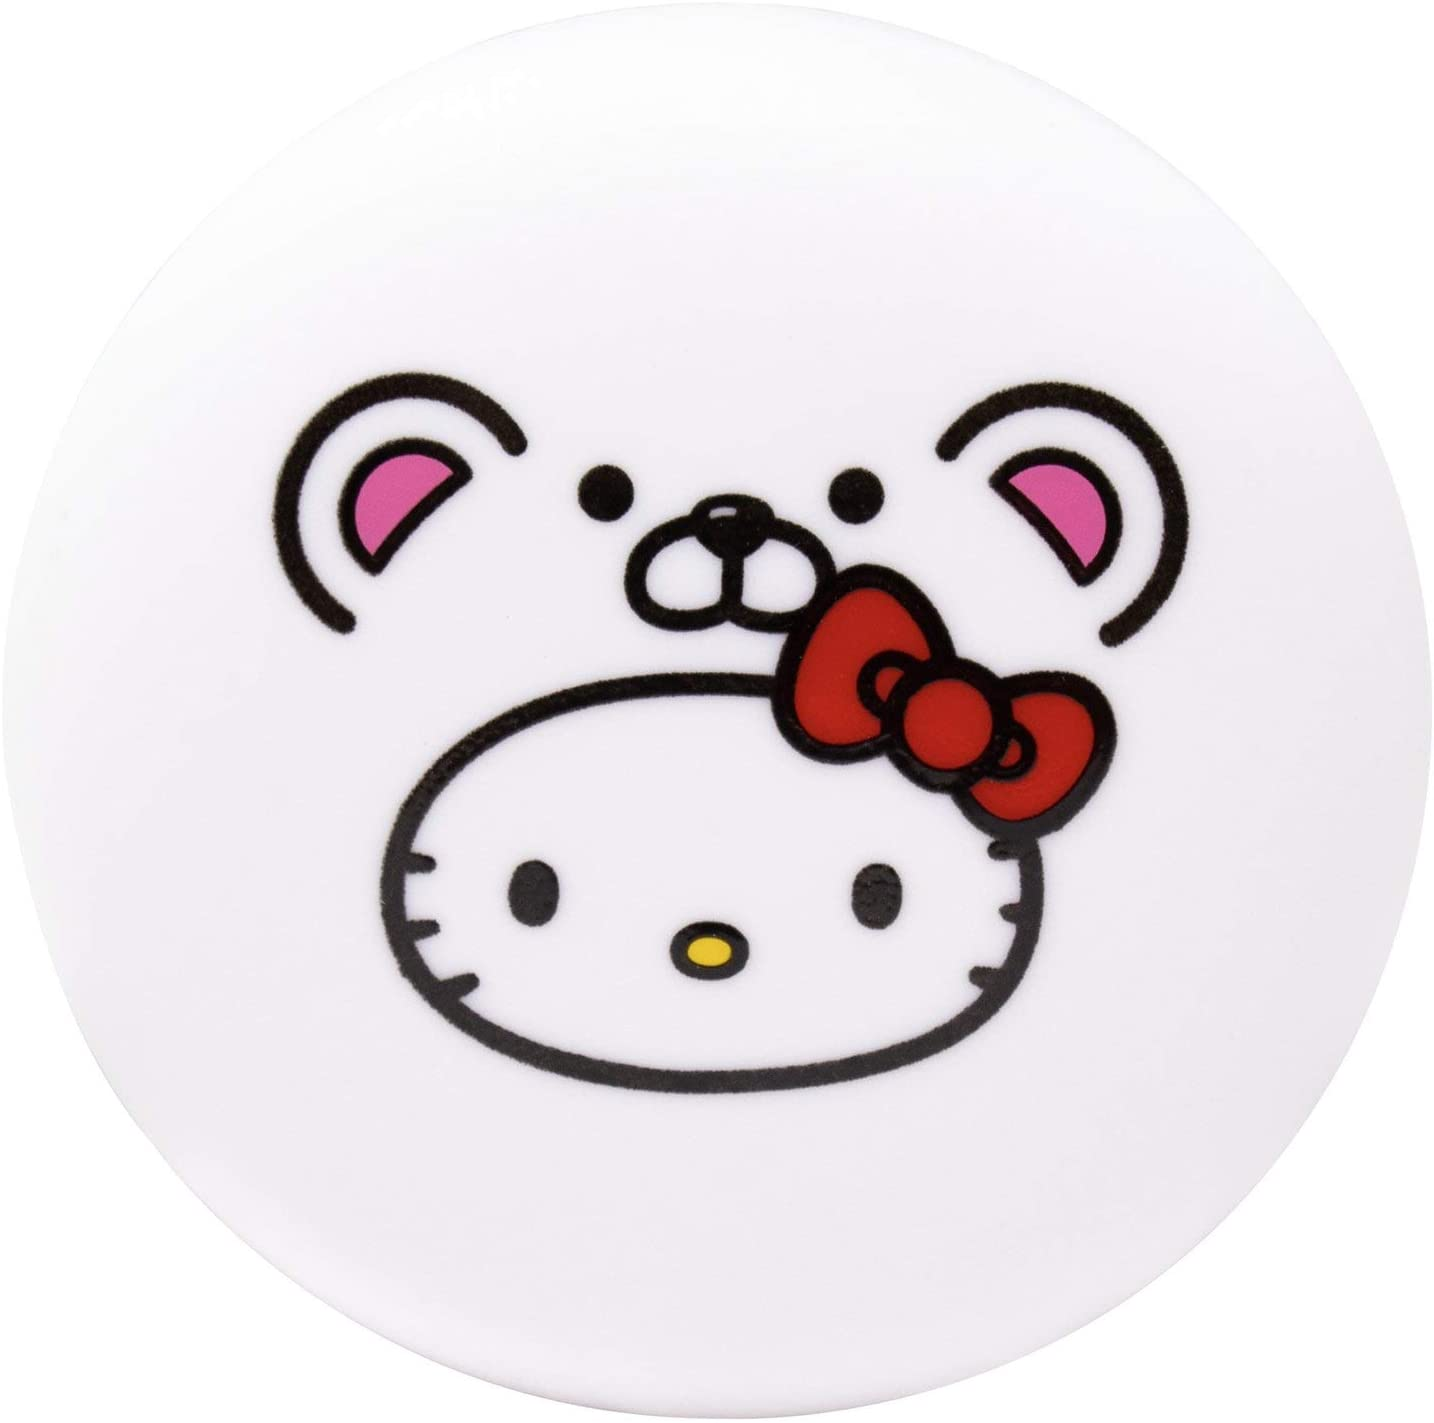 hello-kitty-teddy-white-chocolate-macaron-lip-balm-First-Alternate-image